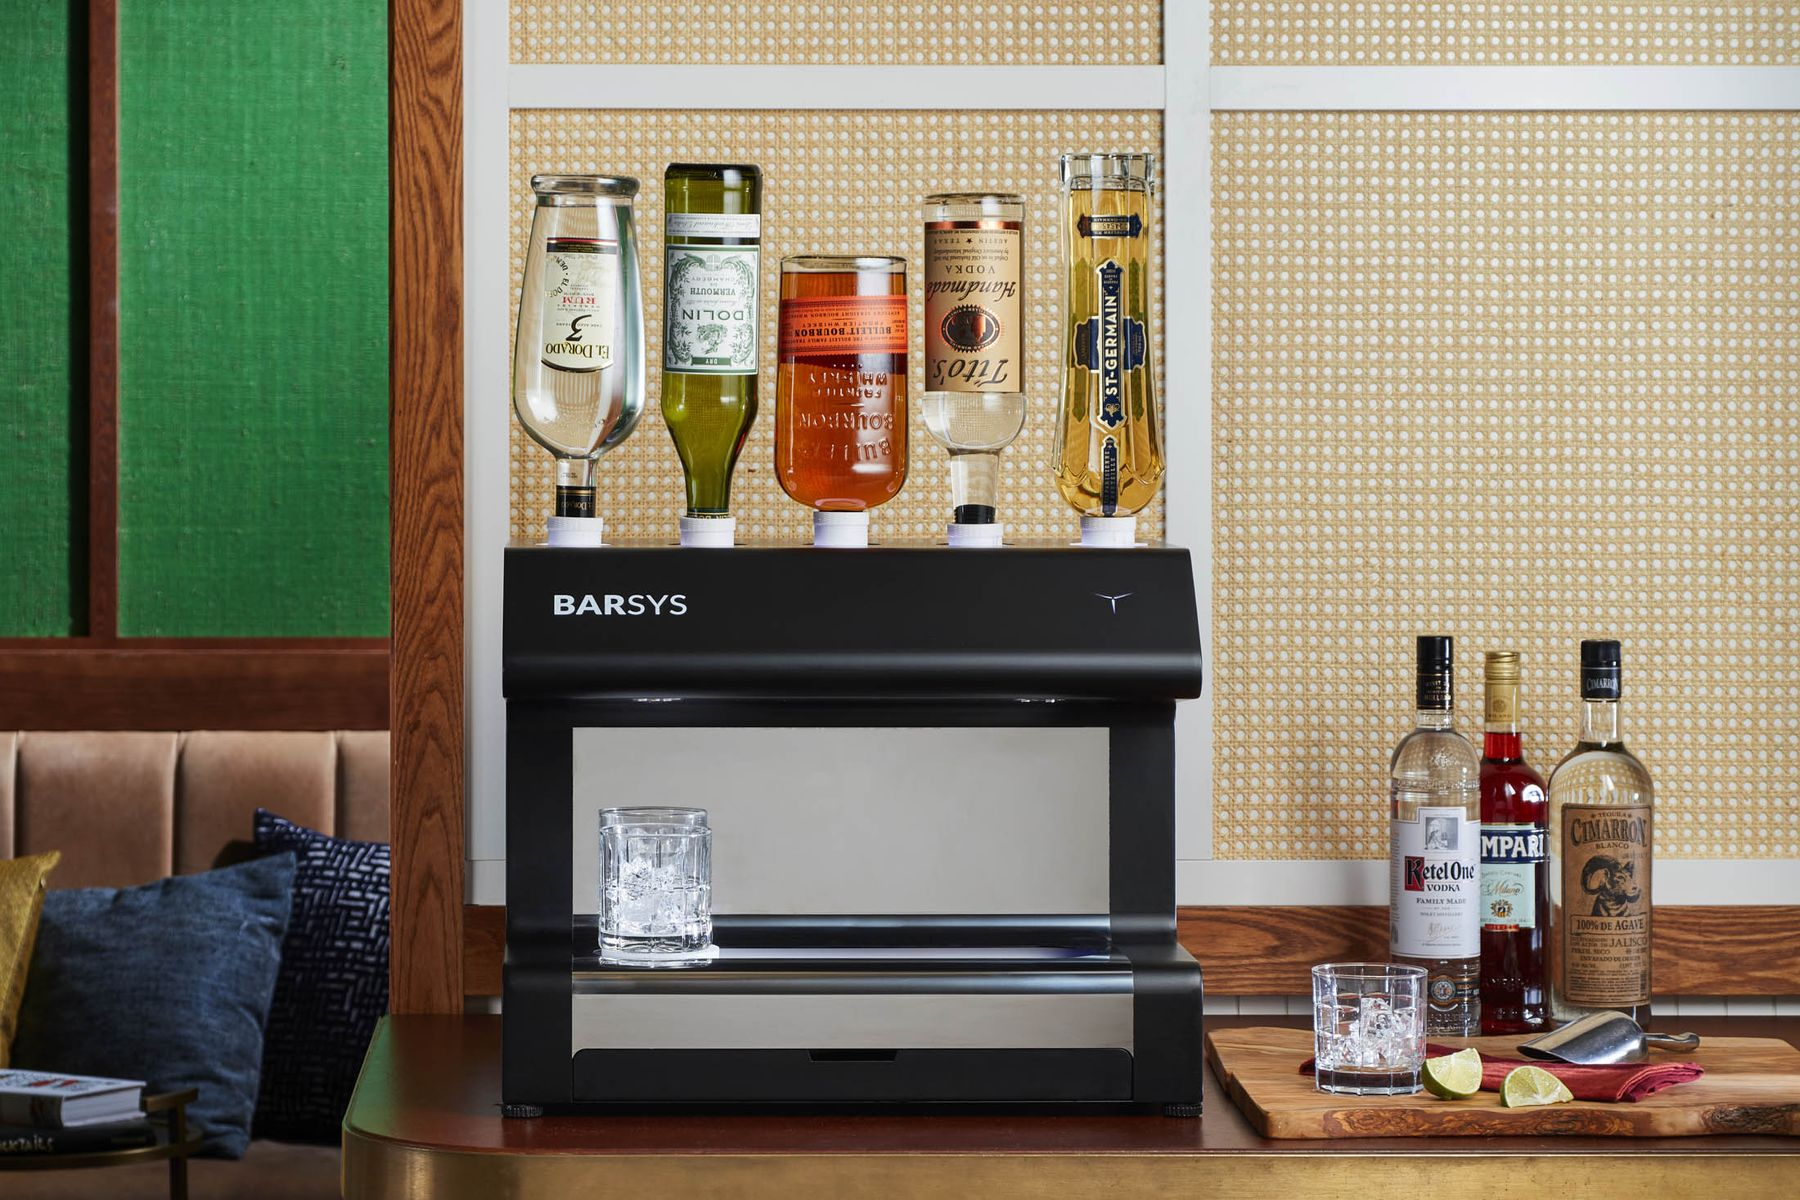 Who Doesn't Want A Robot Bartender That Sits On Your Countertop?